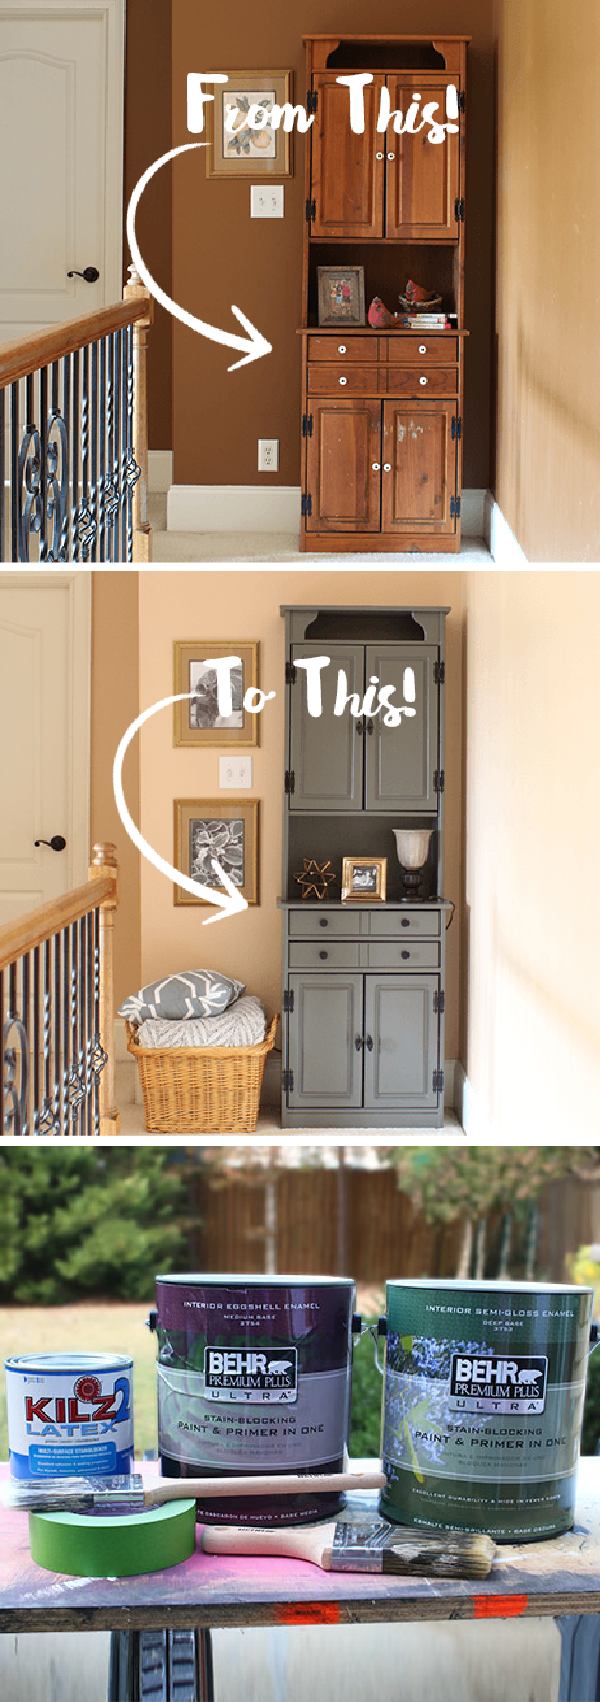 Go from outdated and dark to light and modern with this easy DIY pine hutch makeover from Joy, of Joy's Life. Joy painted her old wooden cabinet a neutral shade of Mined Coal. This dark charcoal gray color looks great when paired with chic gold accents. Joy also used a fresh coat of Pumpkin Cream to make her hallway look larger and more open.